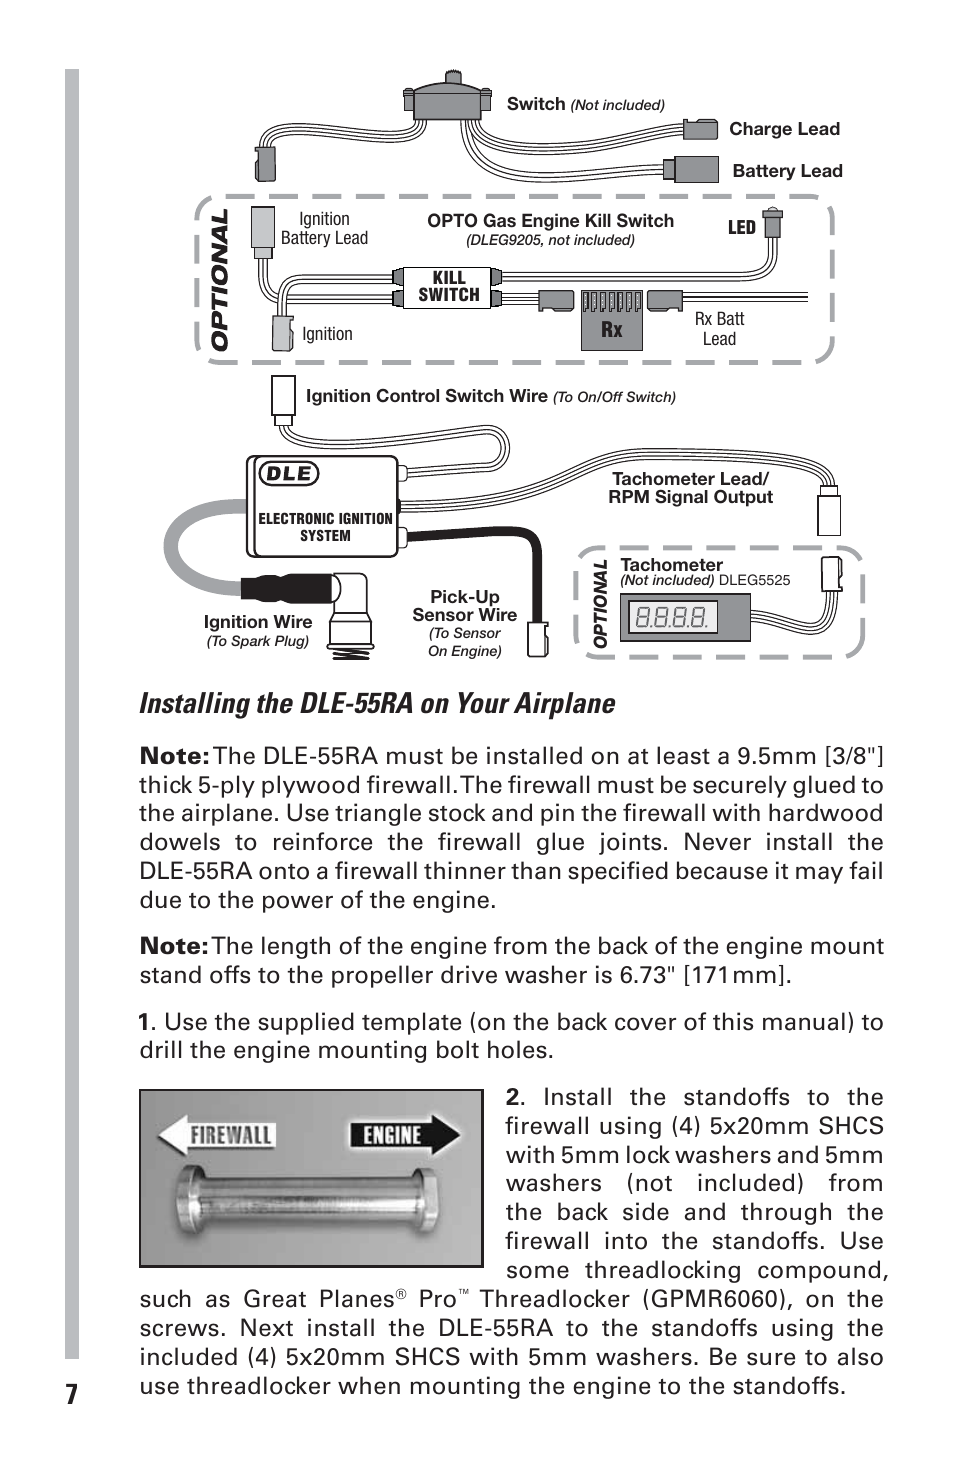 Installing the dle-55ra on your airplane | DLE 55RA User Manual ...